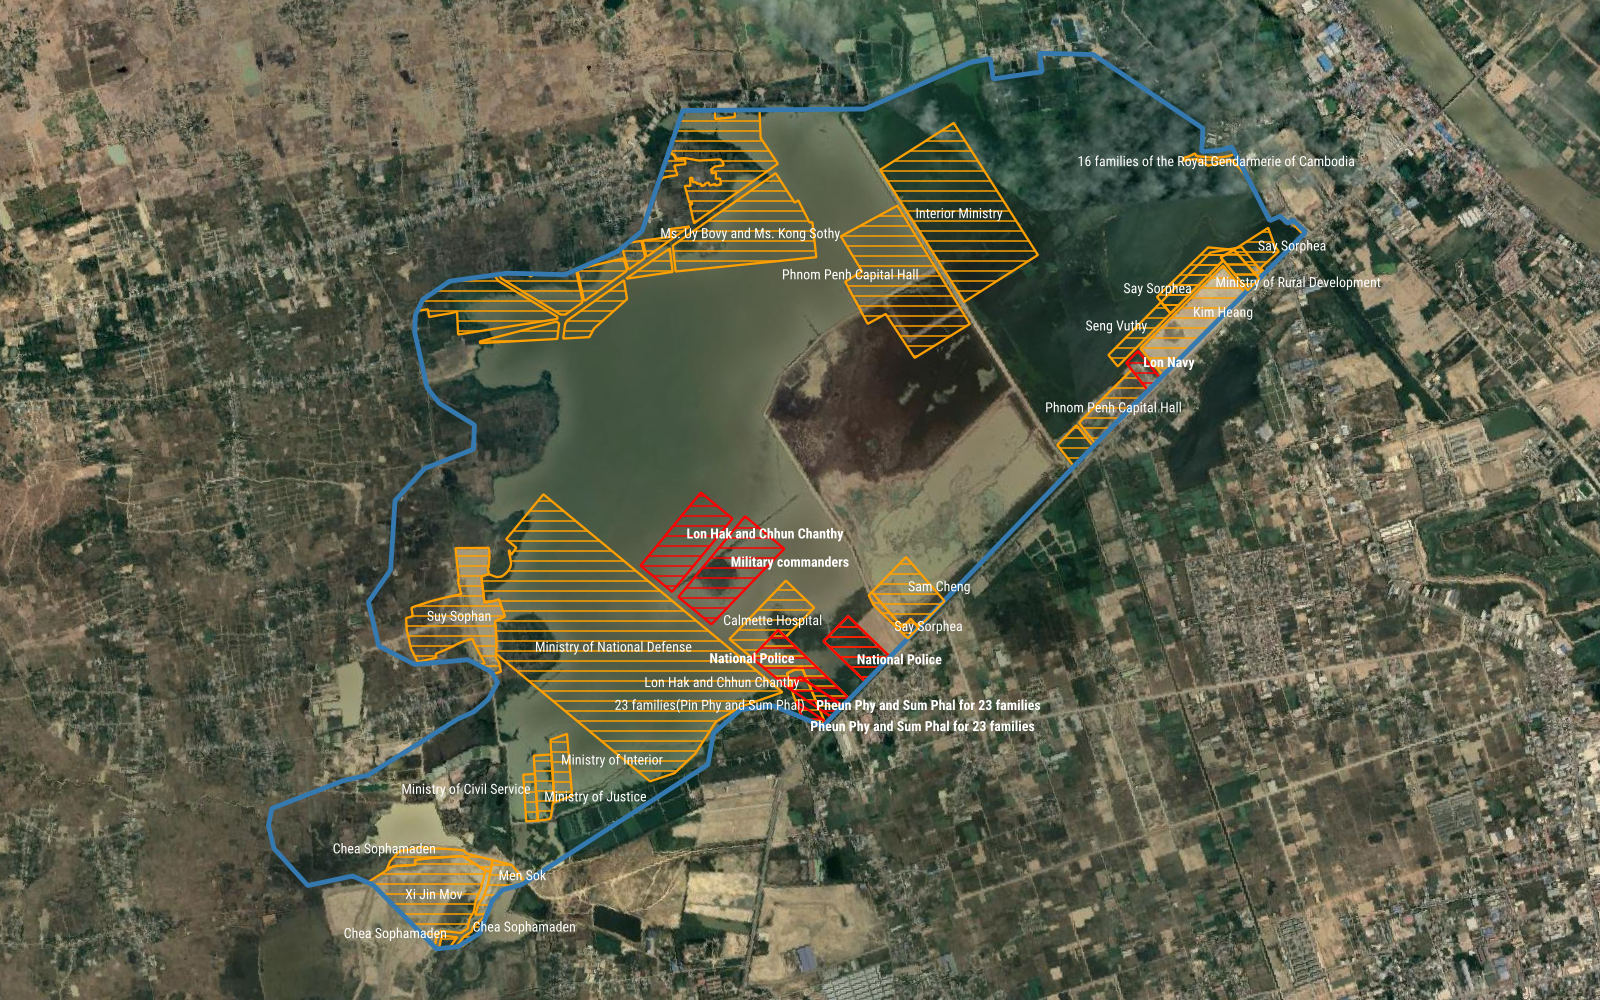 Allocation of land at Phnom Penh's Boeng Tamok, including new plots given to senior military officials. (Michael Dickison/VOD)